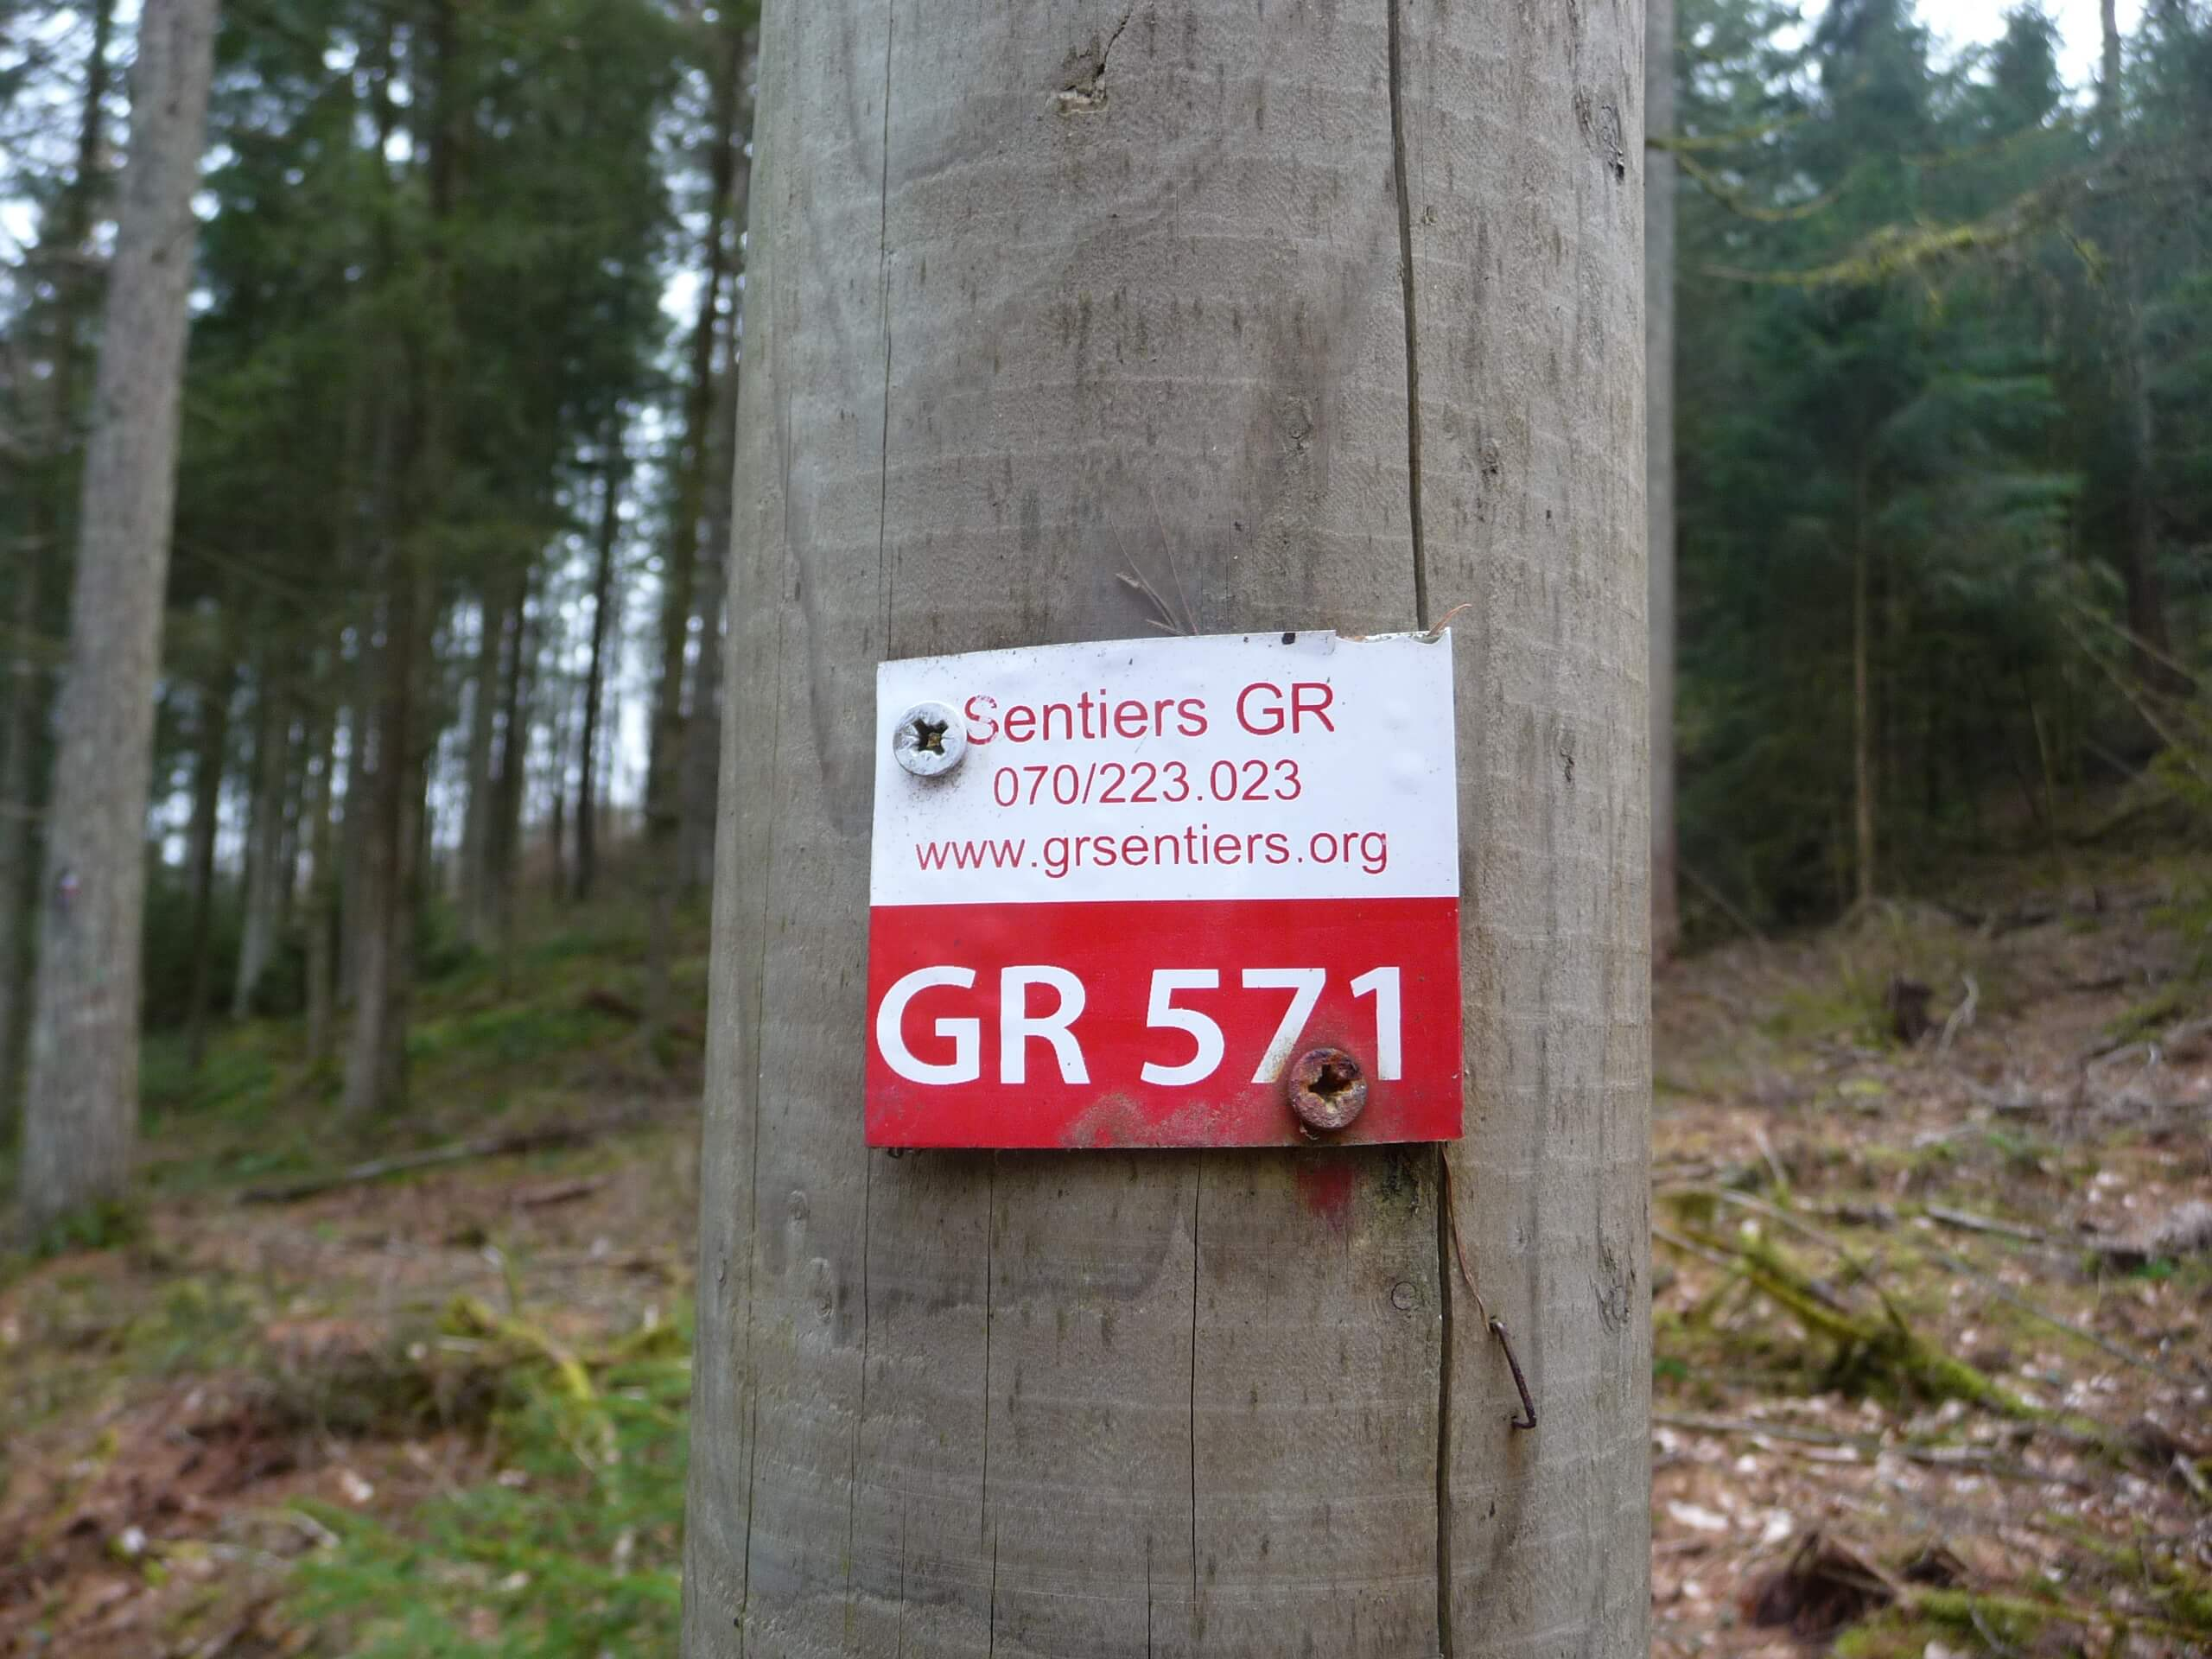 GR Sentiers has done a great job signing the GR footpaths